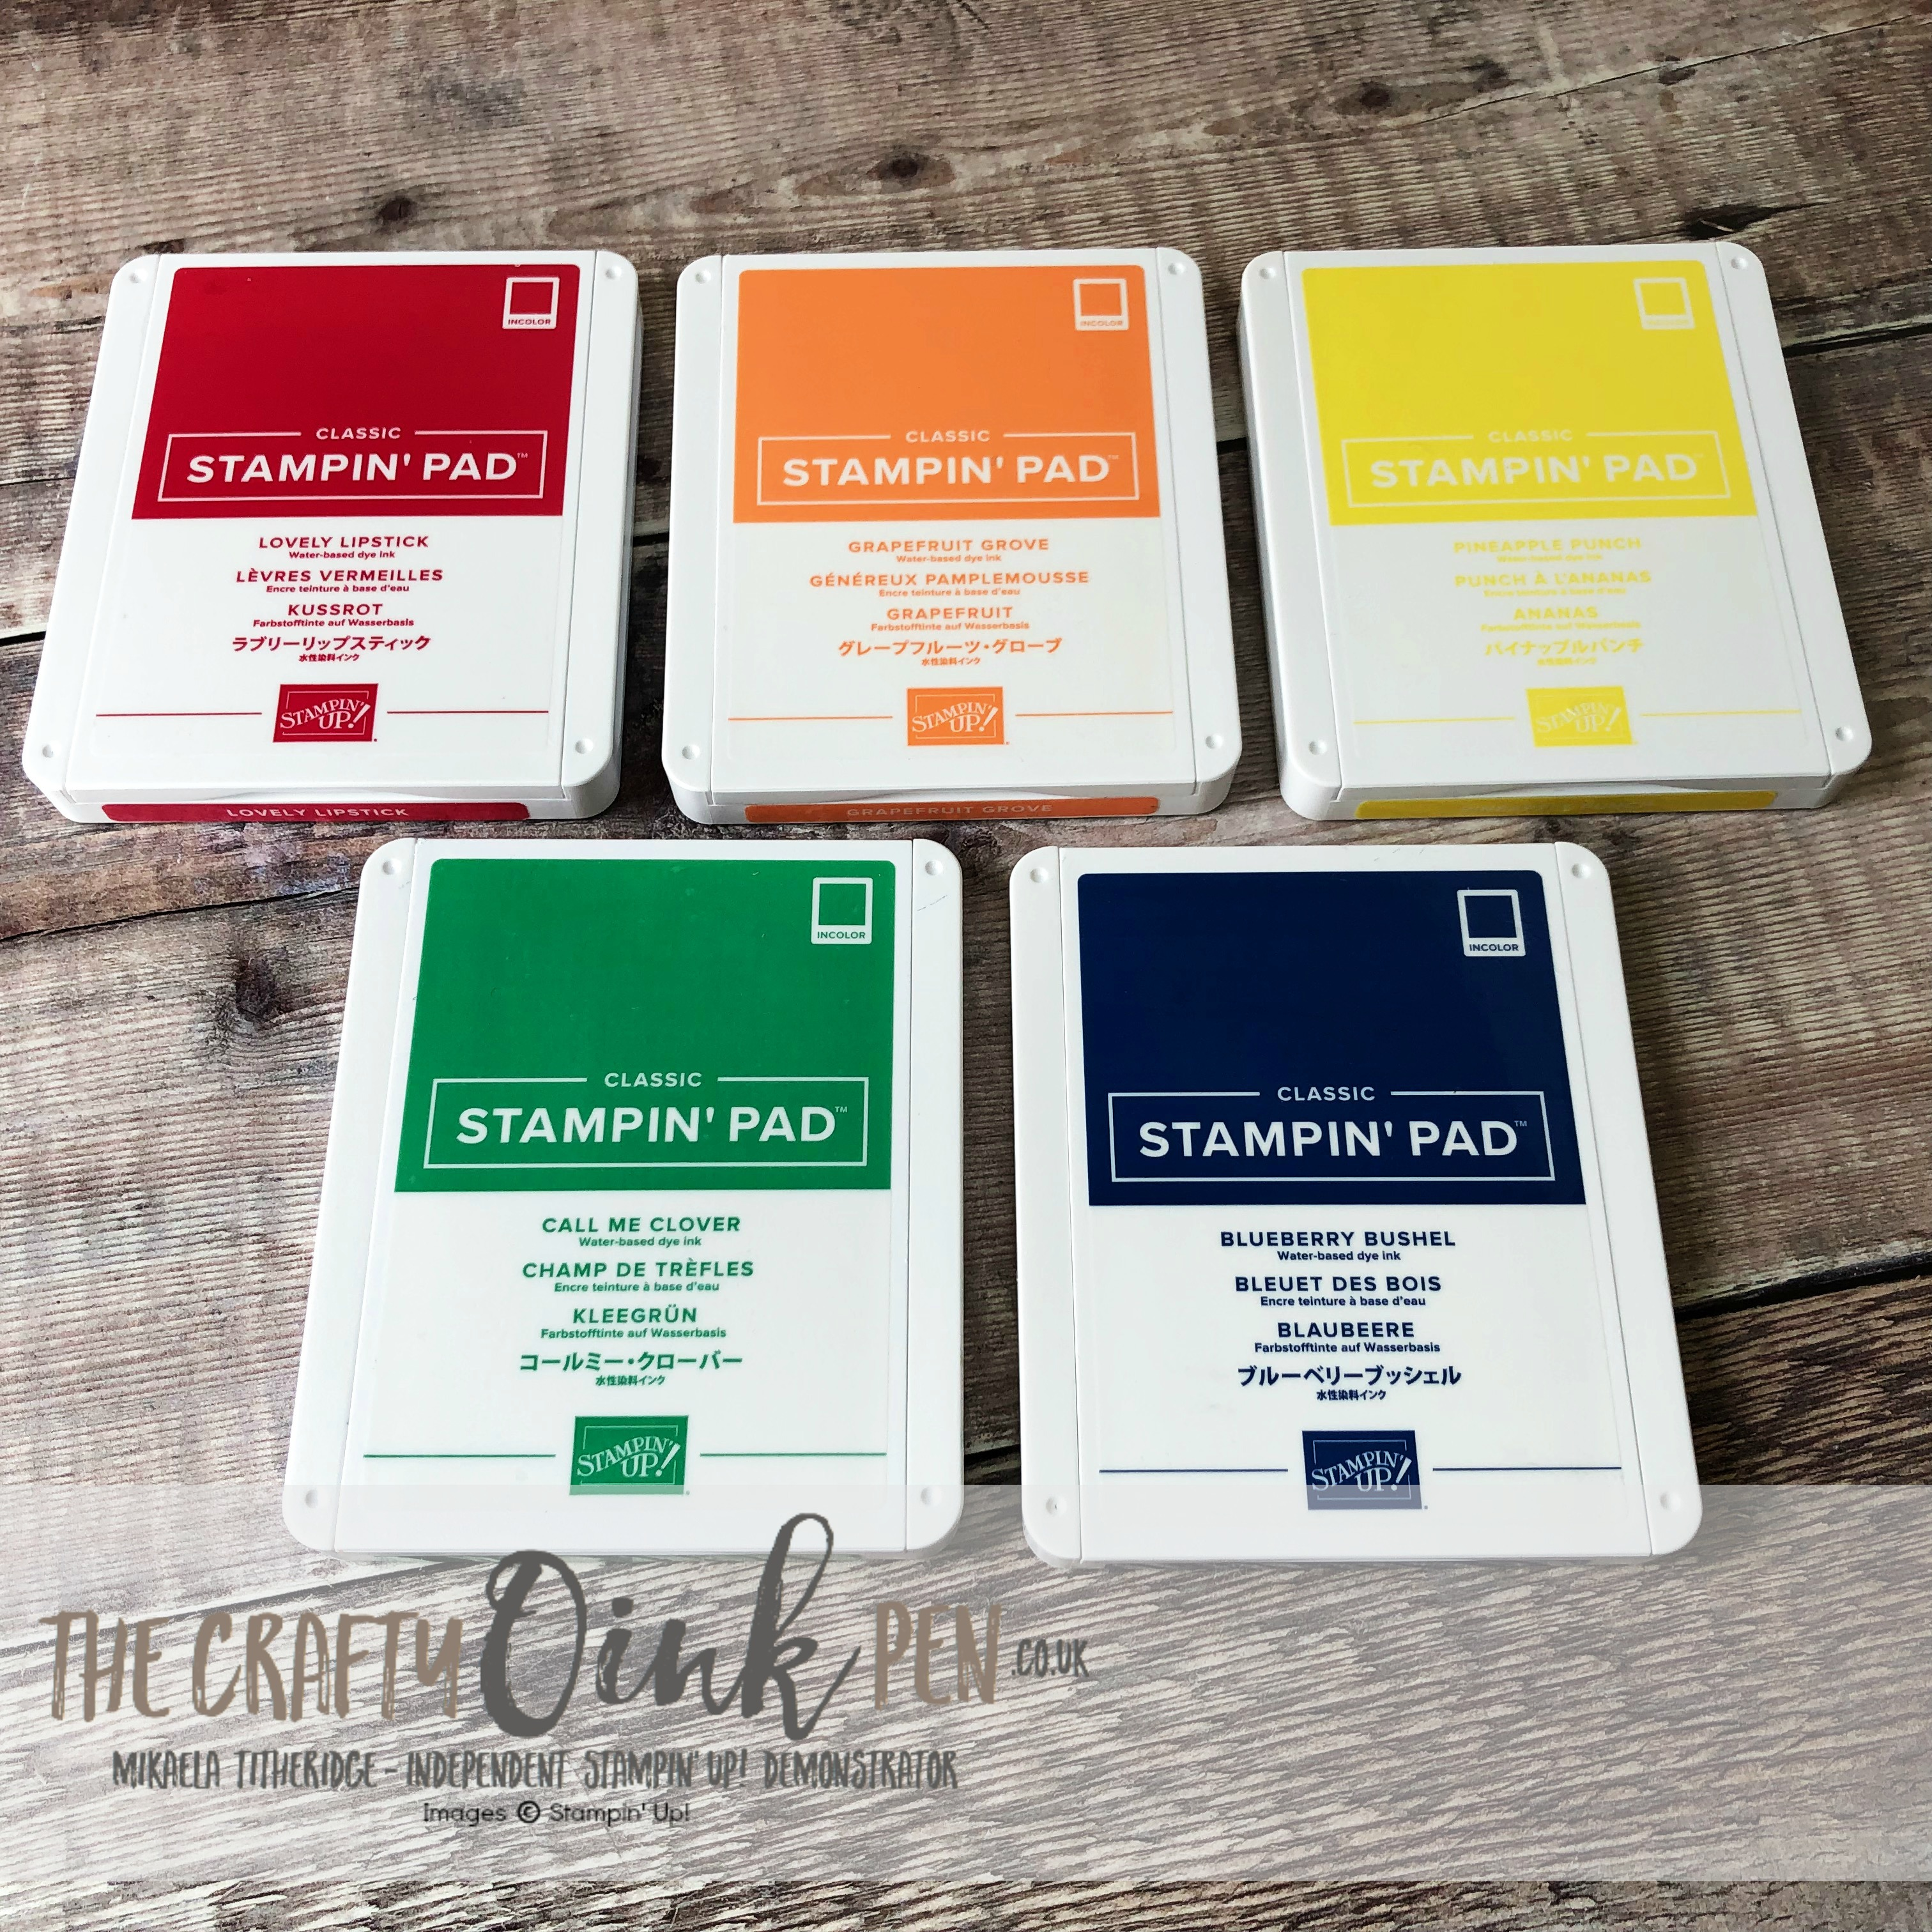 Stampin' Up! Pre Order Products New In Colors 2018-2020 available from Mikaela Titheridge, #6UK Independent Stampin' Up! Demonstrator, The Crafty oINK Pen. Supplies available through my online store 24/7